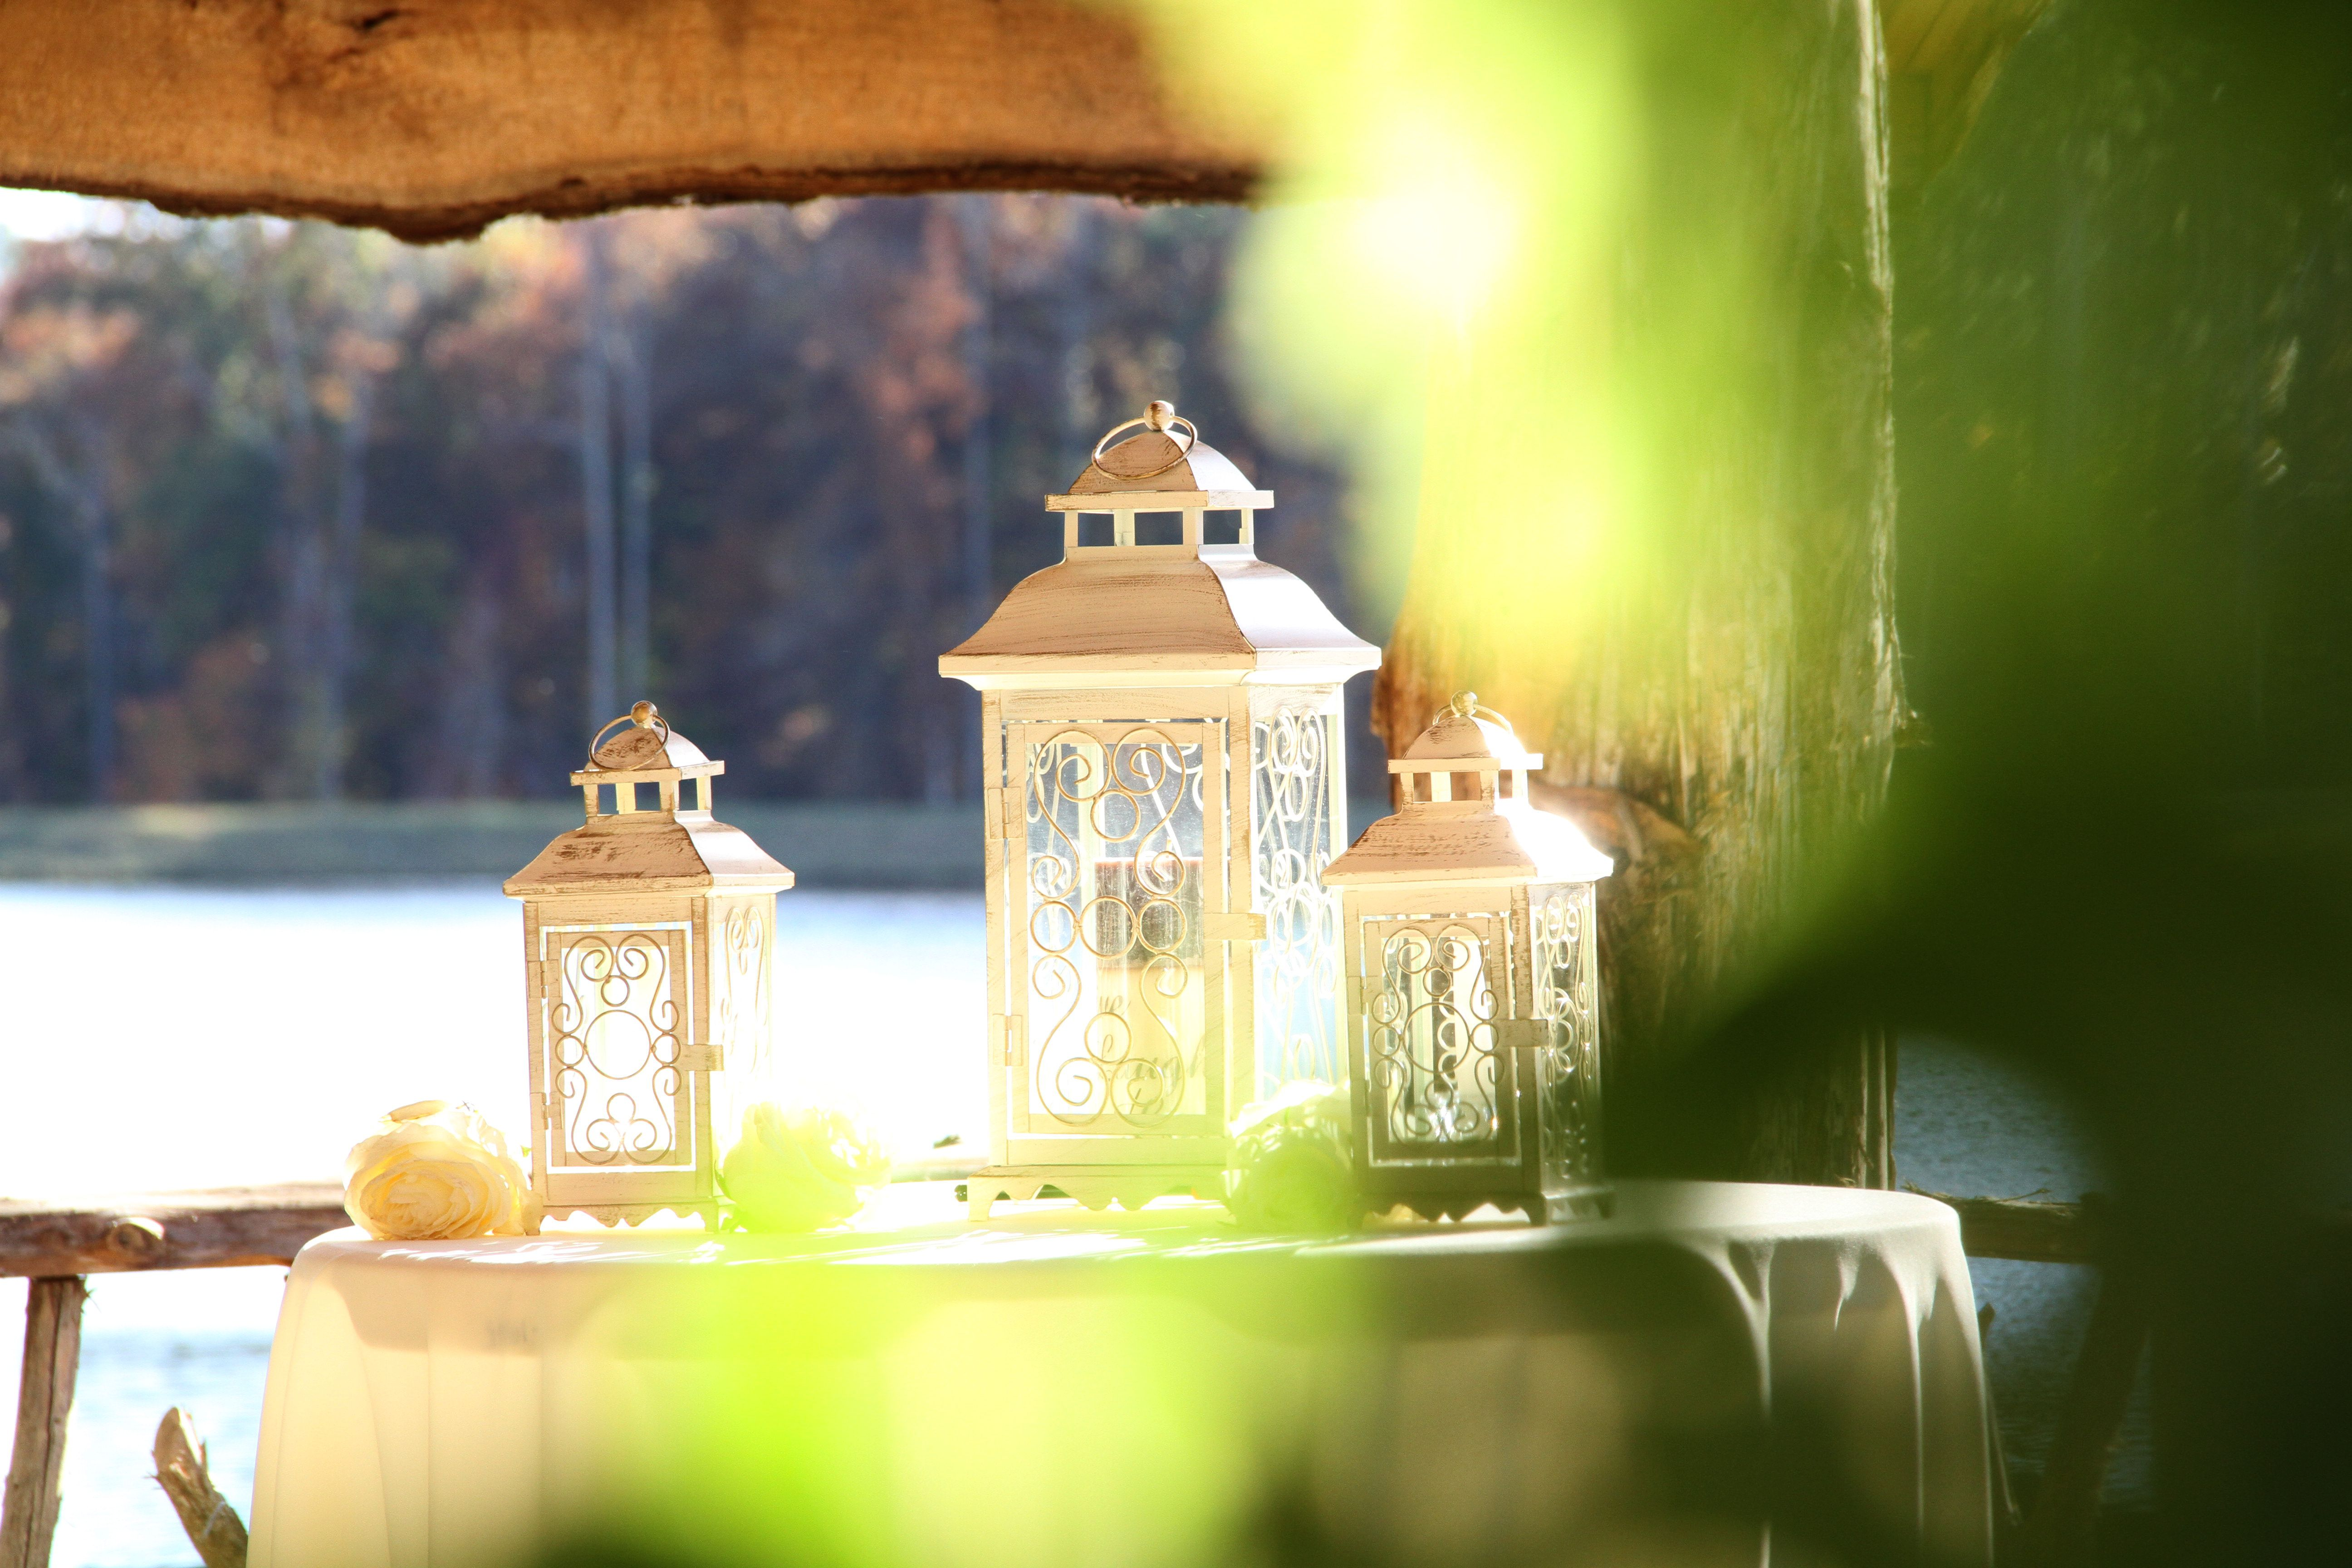 Outdoor Unity Candle Idea. Lanterns To Protect The Flame